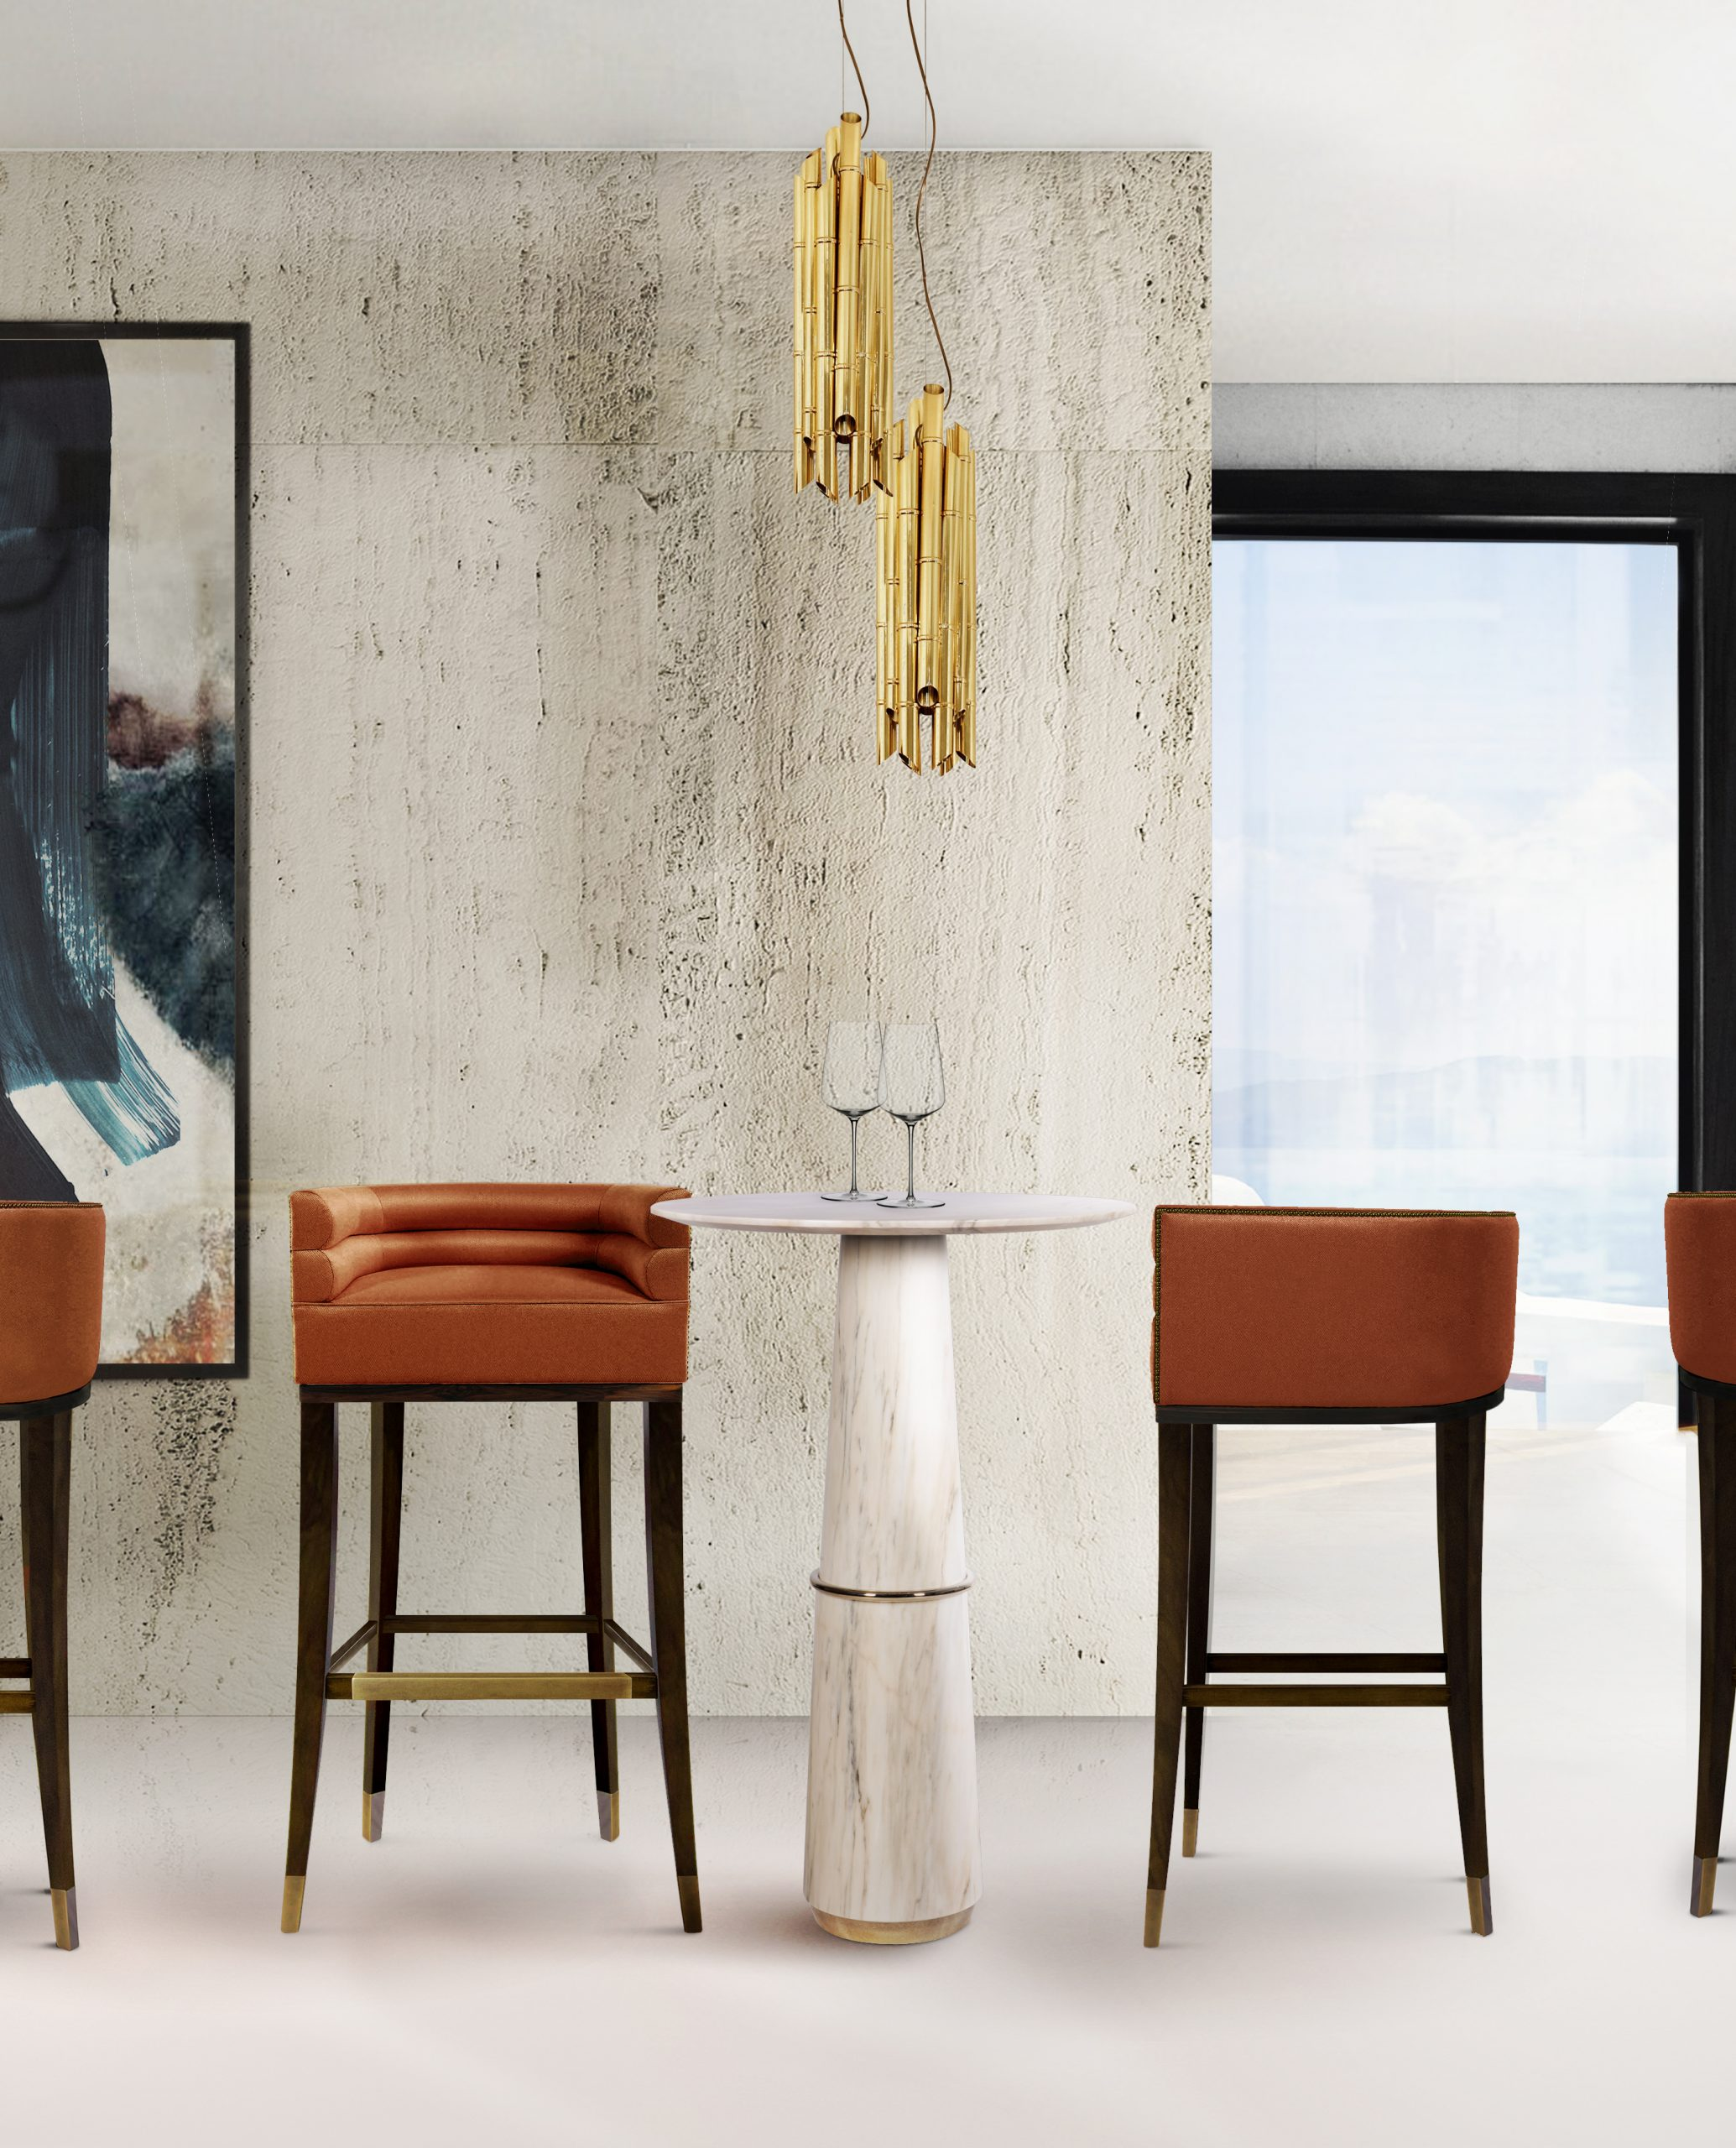 20 Counter Stools To Help You Create Your Dream Kitchen counter stools 20 Counter Stools To Help You Create Your Dream Kitchen maa bar chair agra scaled